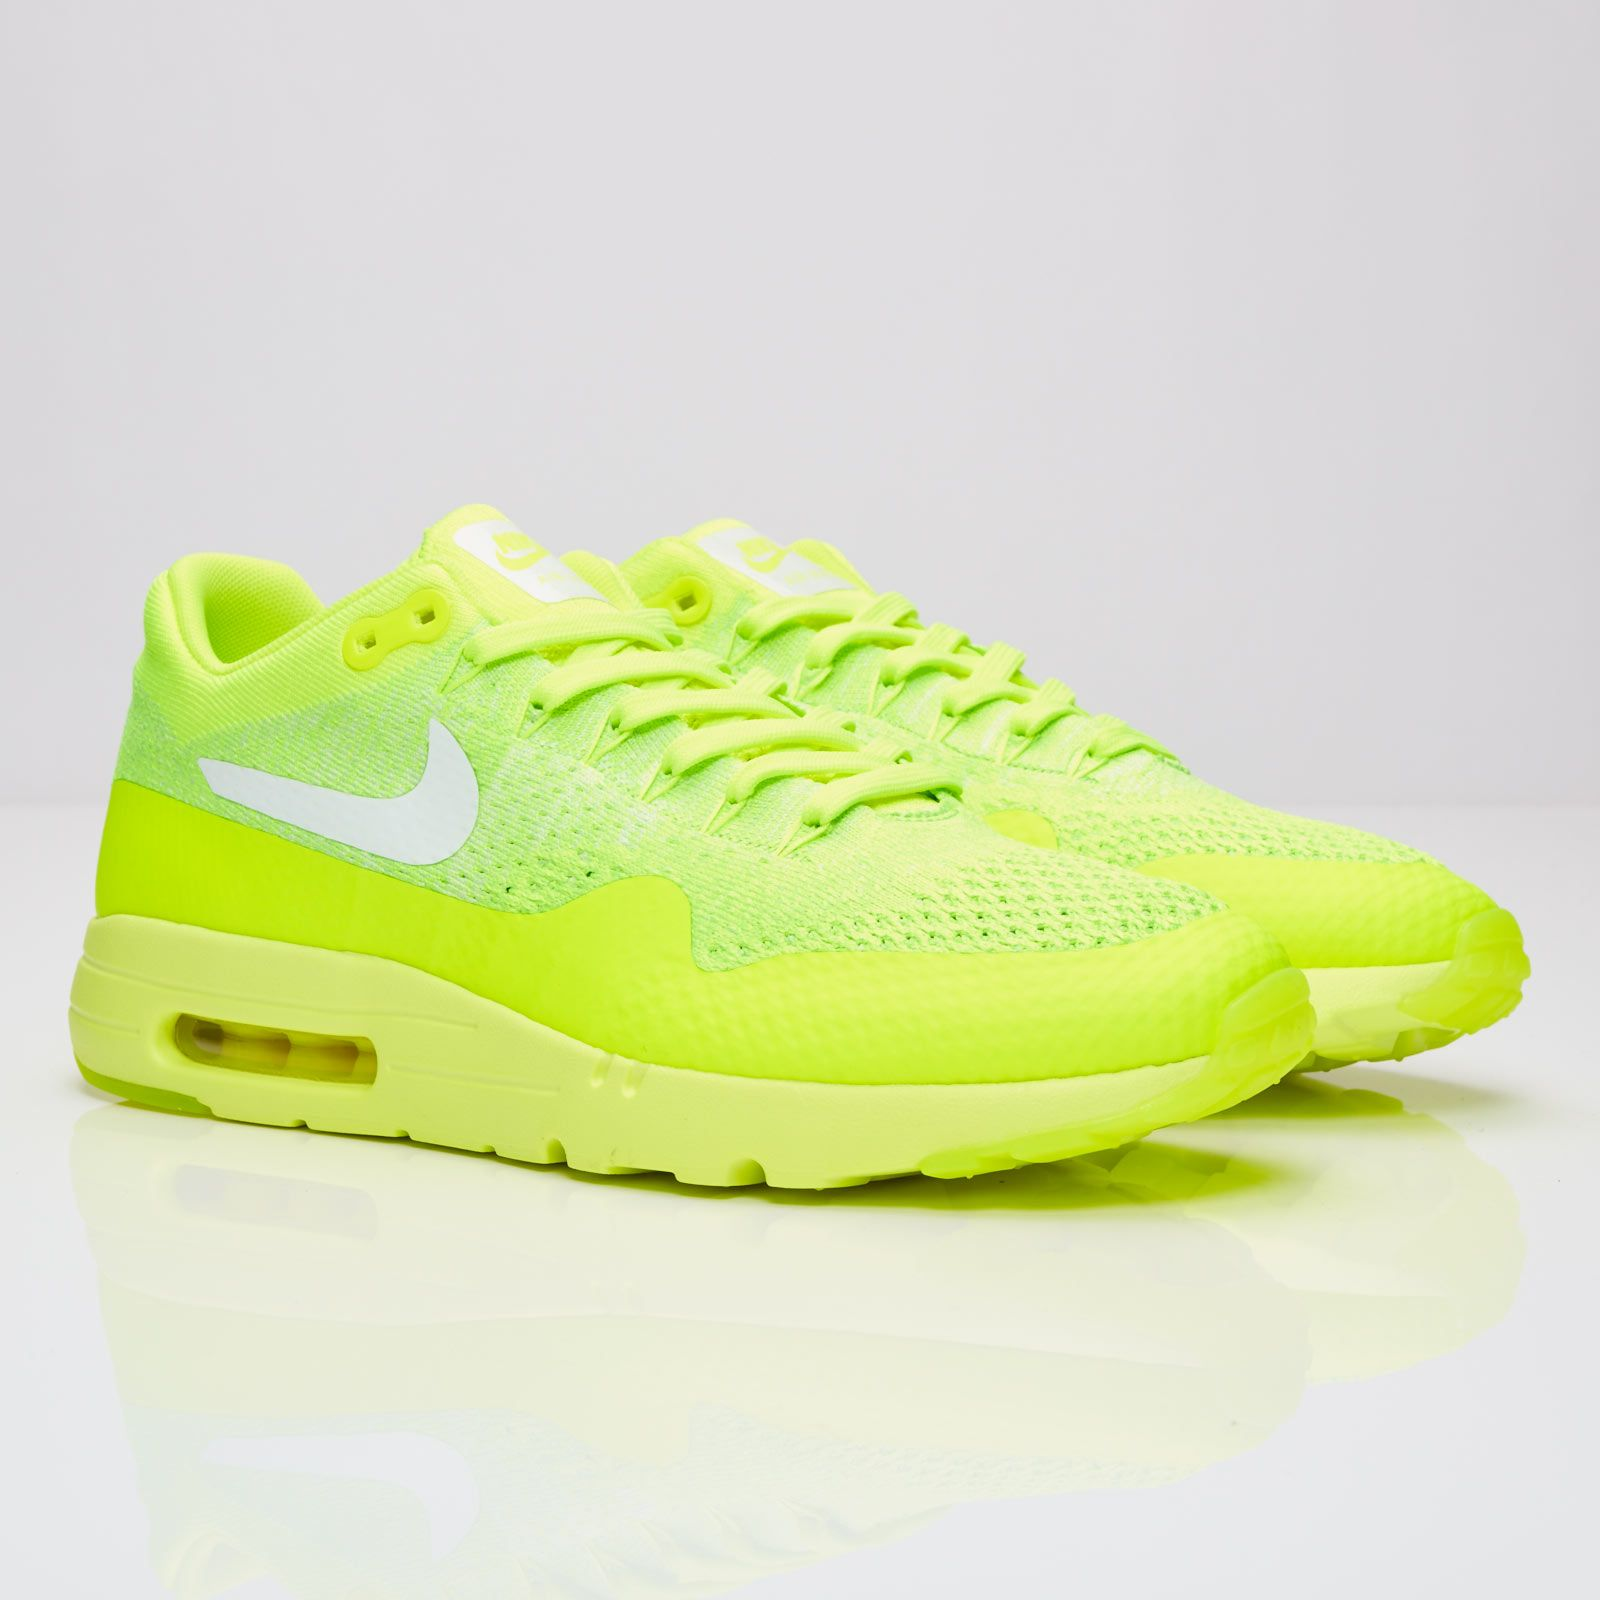 092ce478ad1 NIKE AIR MAX 1 ULTRA FLYKNIT VOLT WHITE ELECTRIC GREEN 843384 701 ...